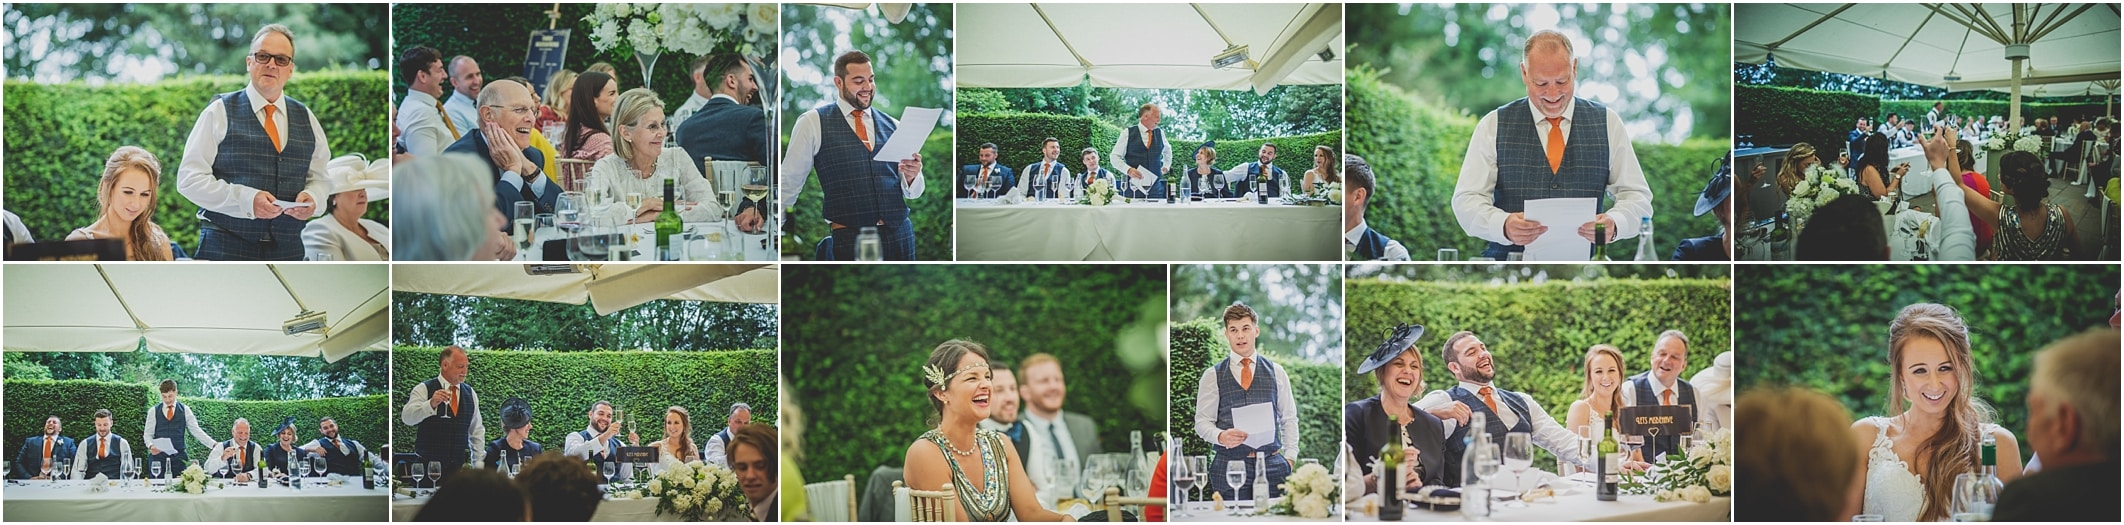 Wedding-Photography-Speeches